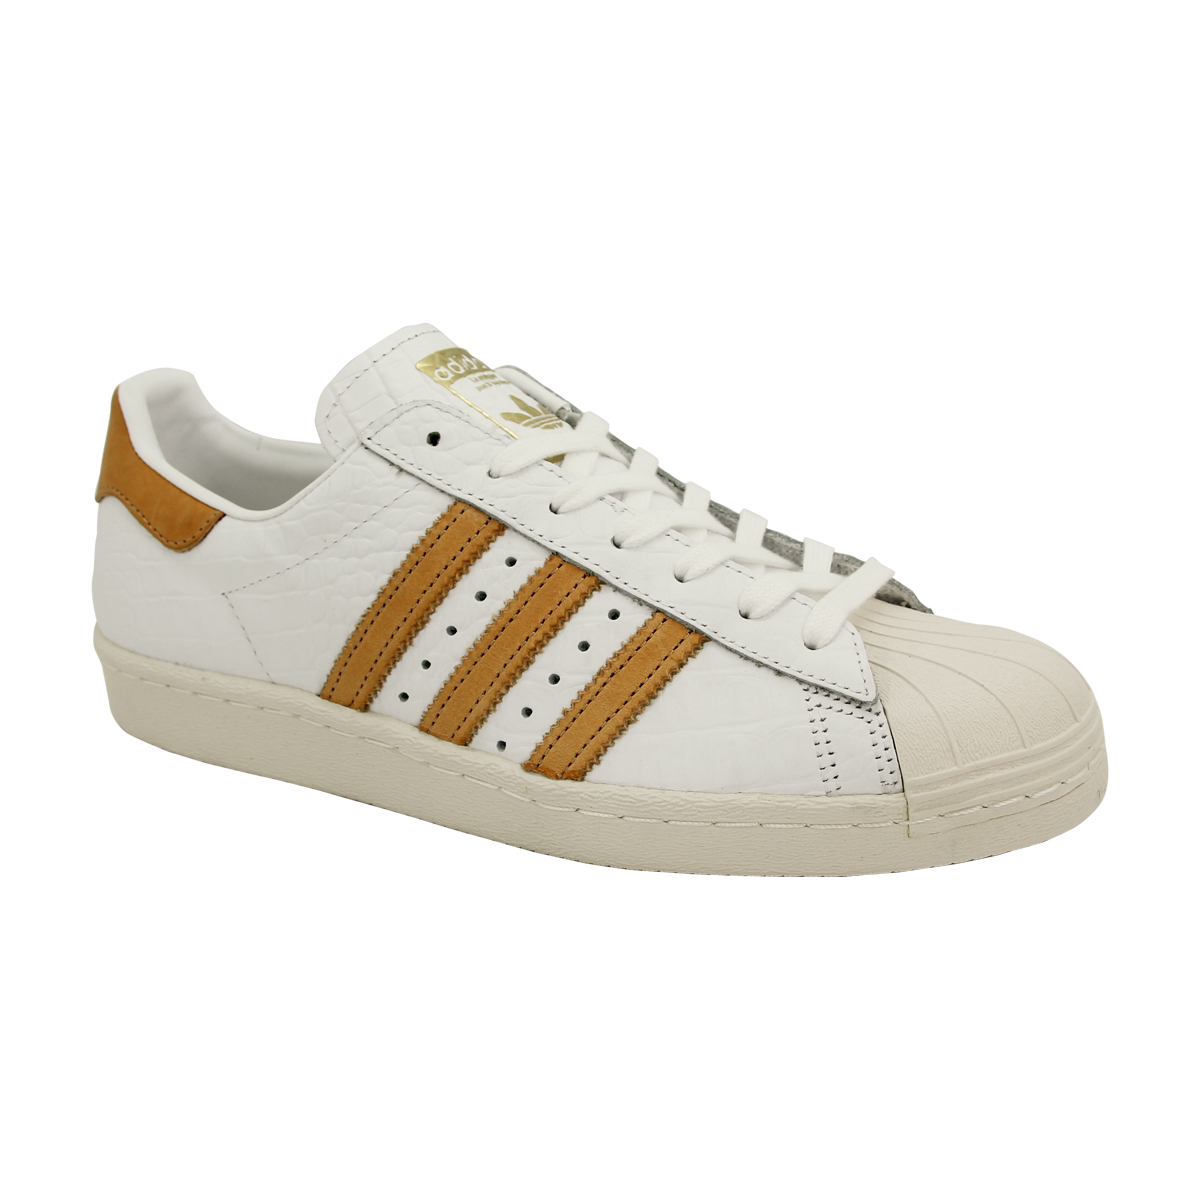 80s Homme Chaussures Adidas Originals Sneakers Superstar Cuir Mode Yv6gf7yb